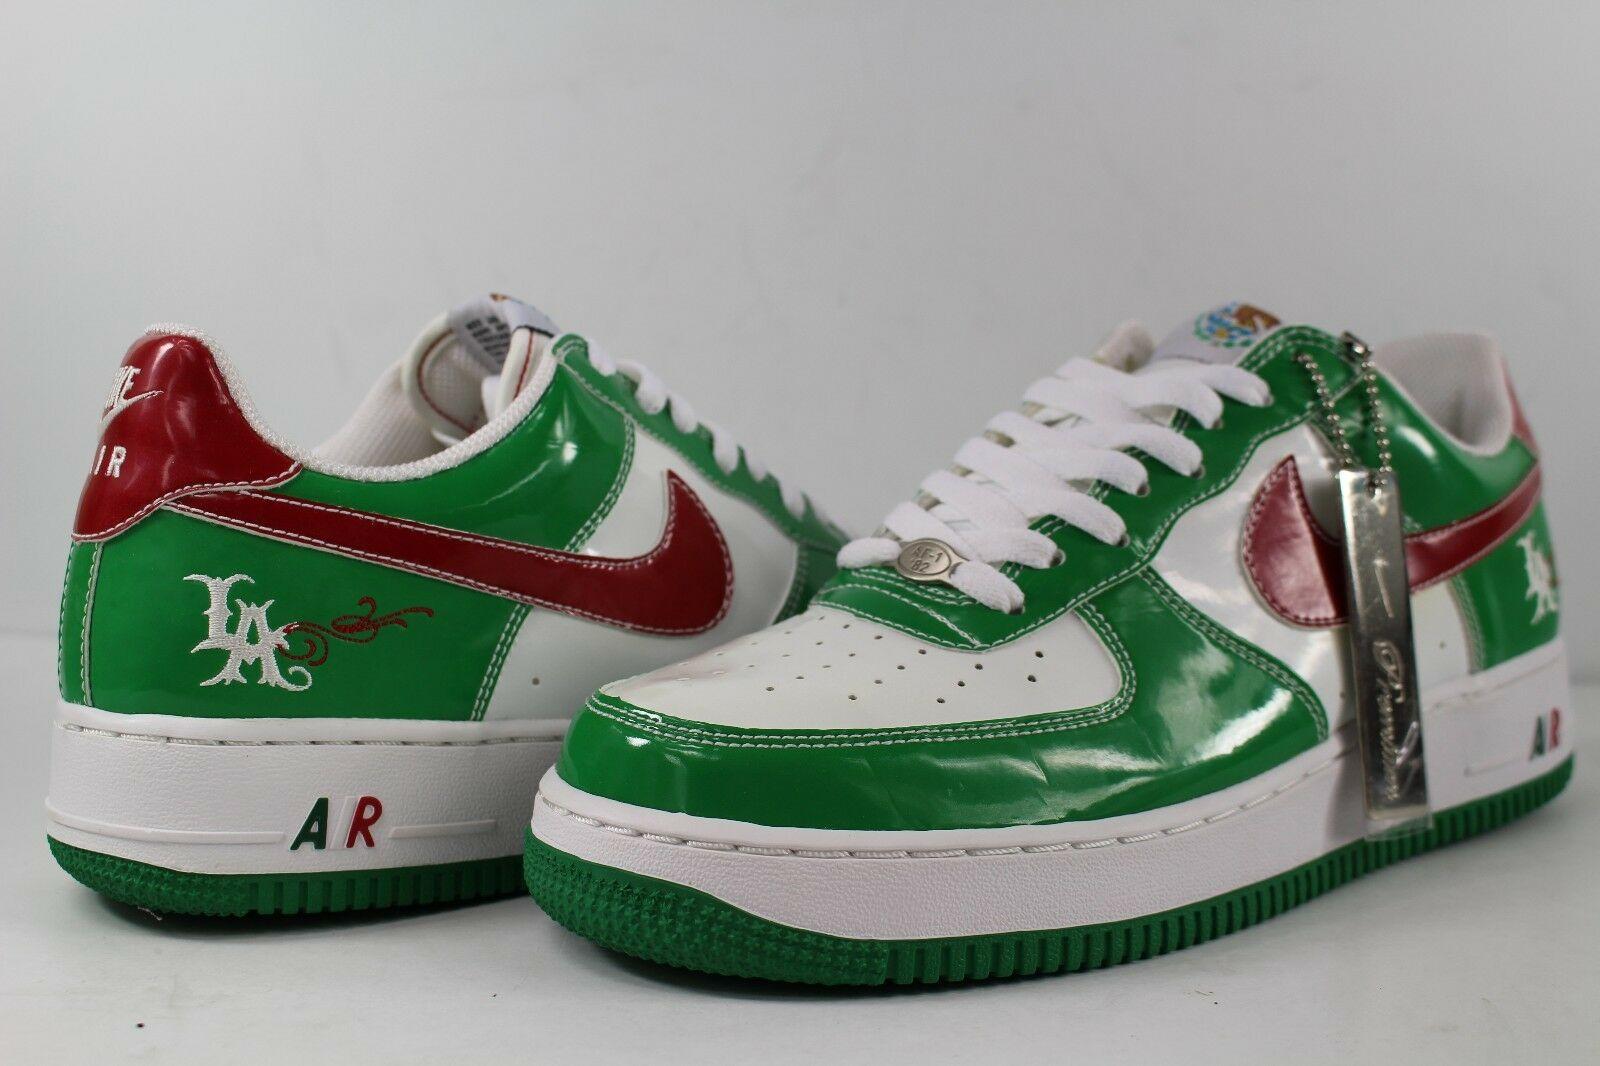 Nike Air Force 1 Mr Cartoon CInco De Mayo White Classic Green Varsity Red LA 8